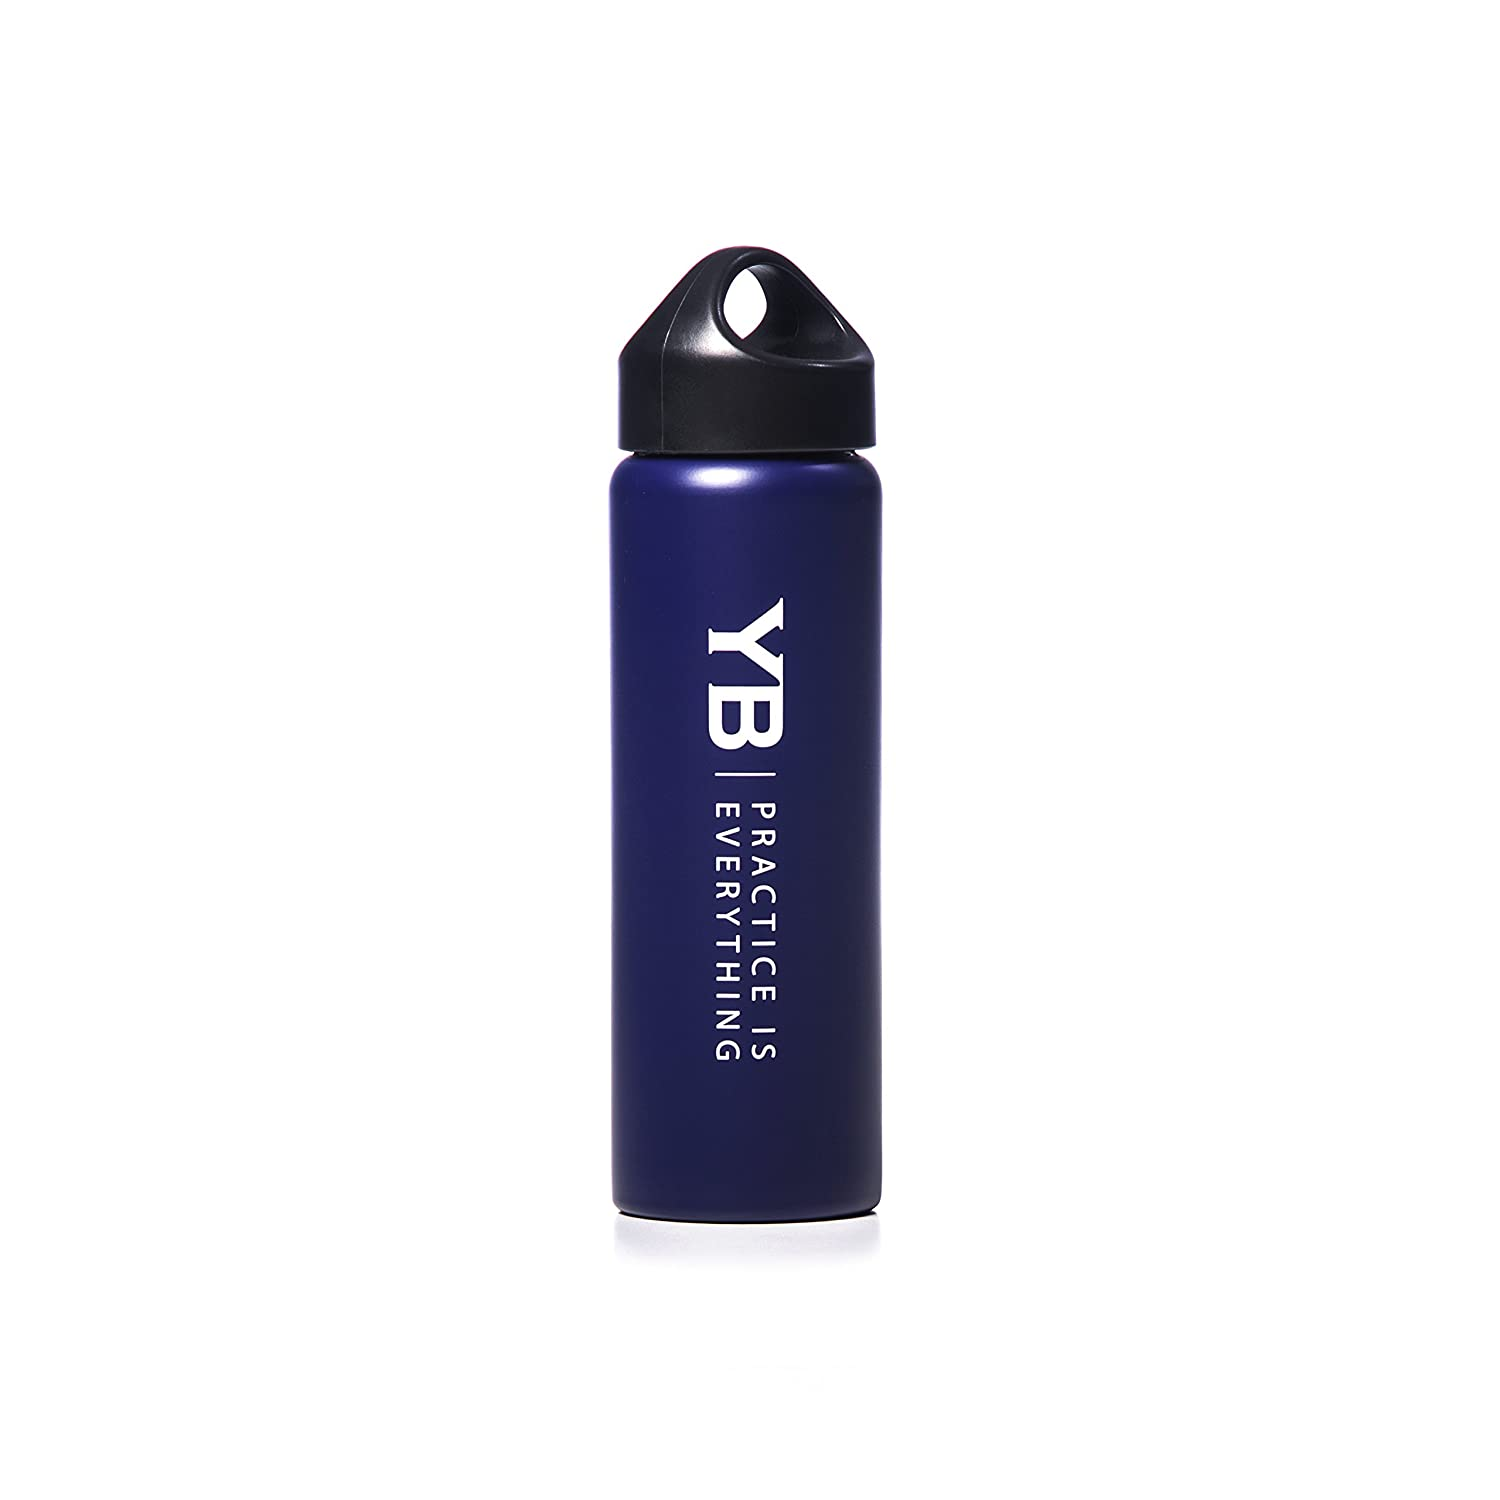 YOGABODY Hot /& Cold Sports Water Bottle BPA-Free Cap Stainless Steel Easy-Fill /& Easy Wash Mouth Leak-Proof Super-Insulated